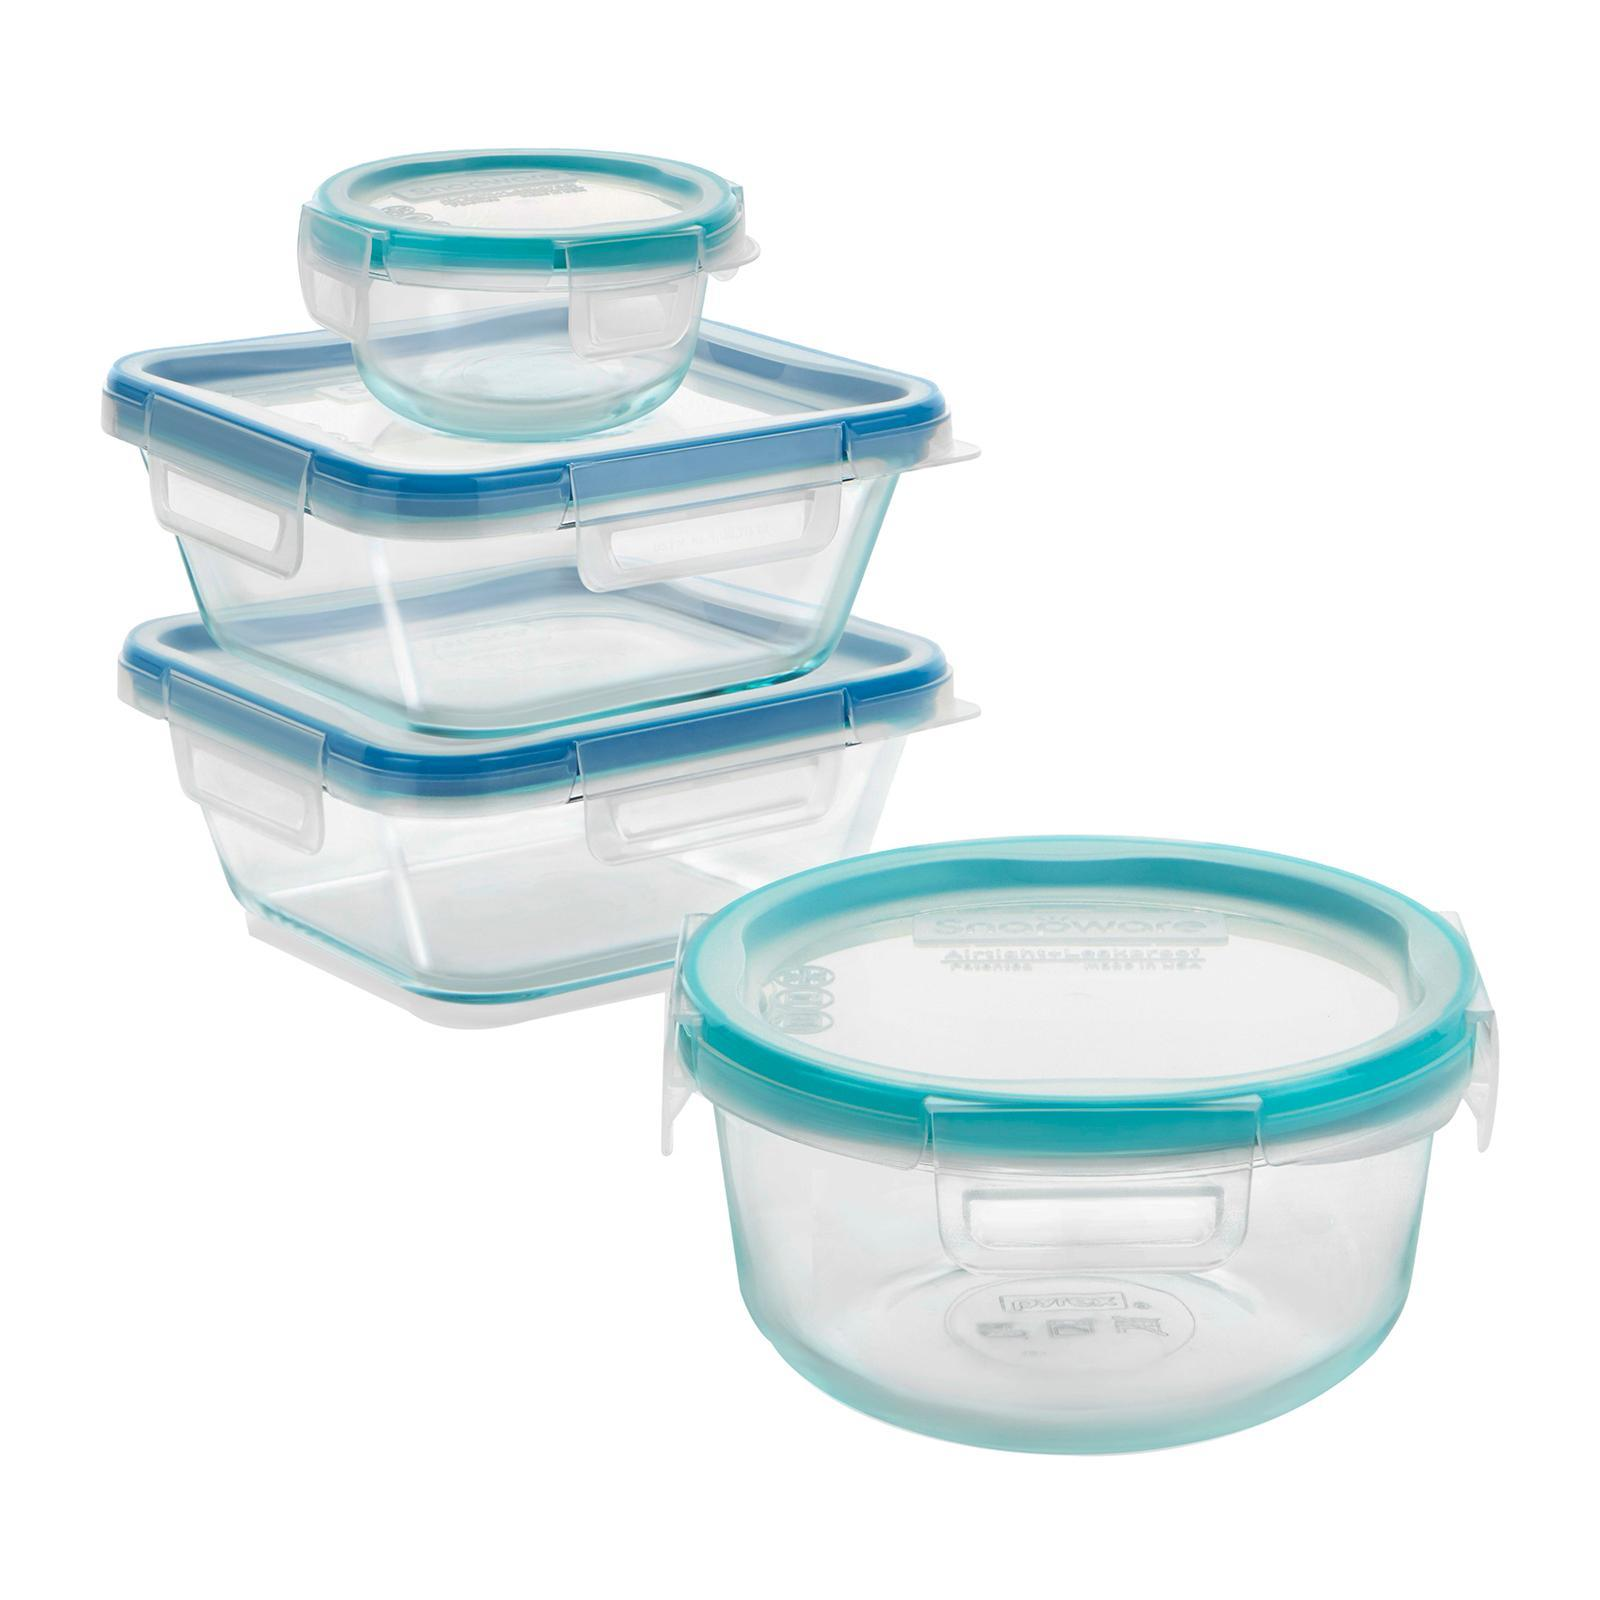 Snapware Snapware Total Solution 8 PCS Glass Storage Set